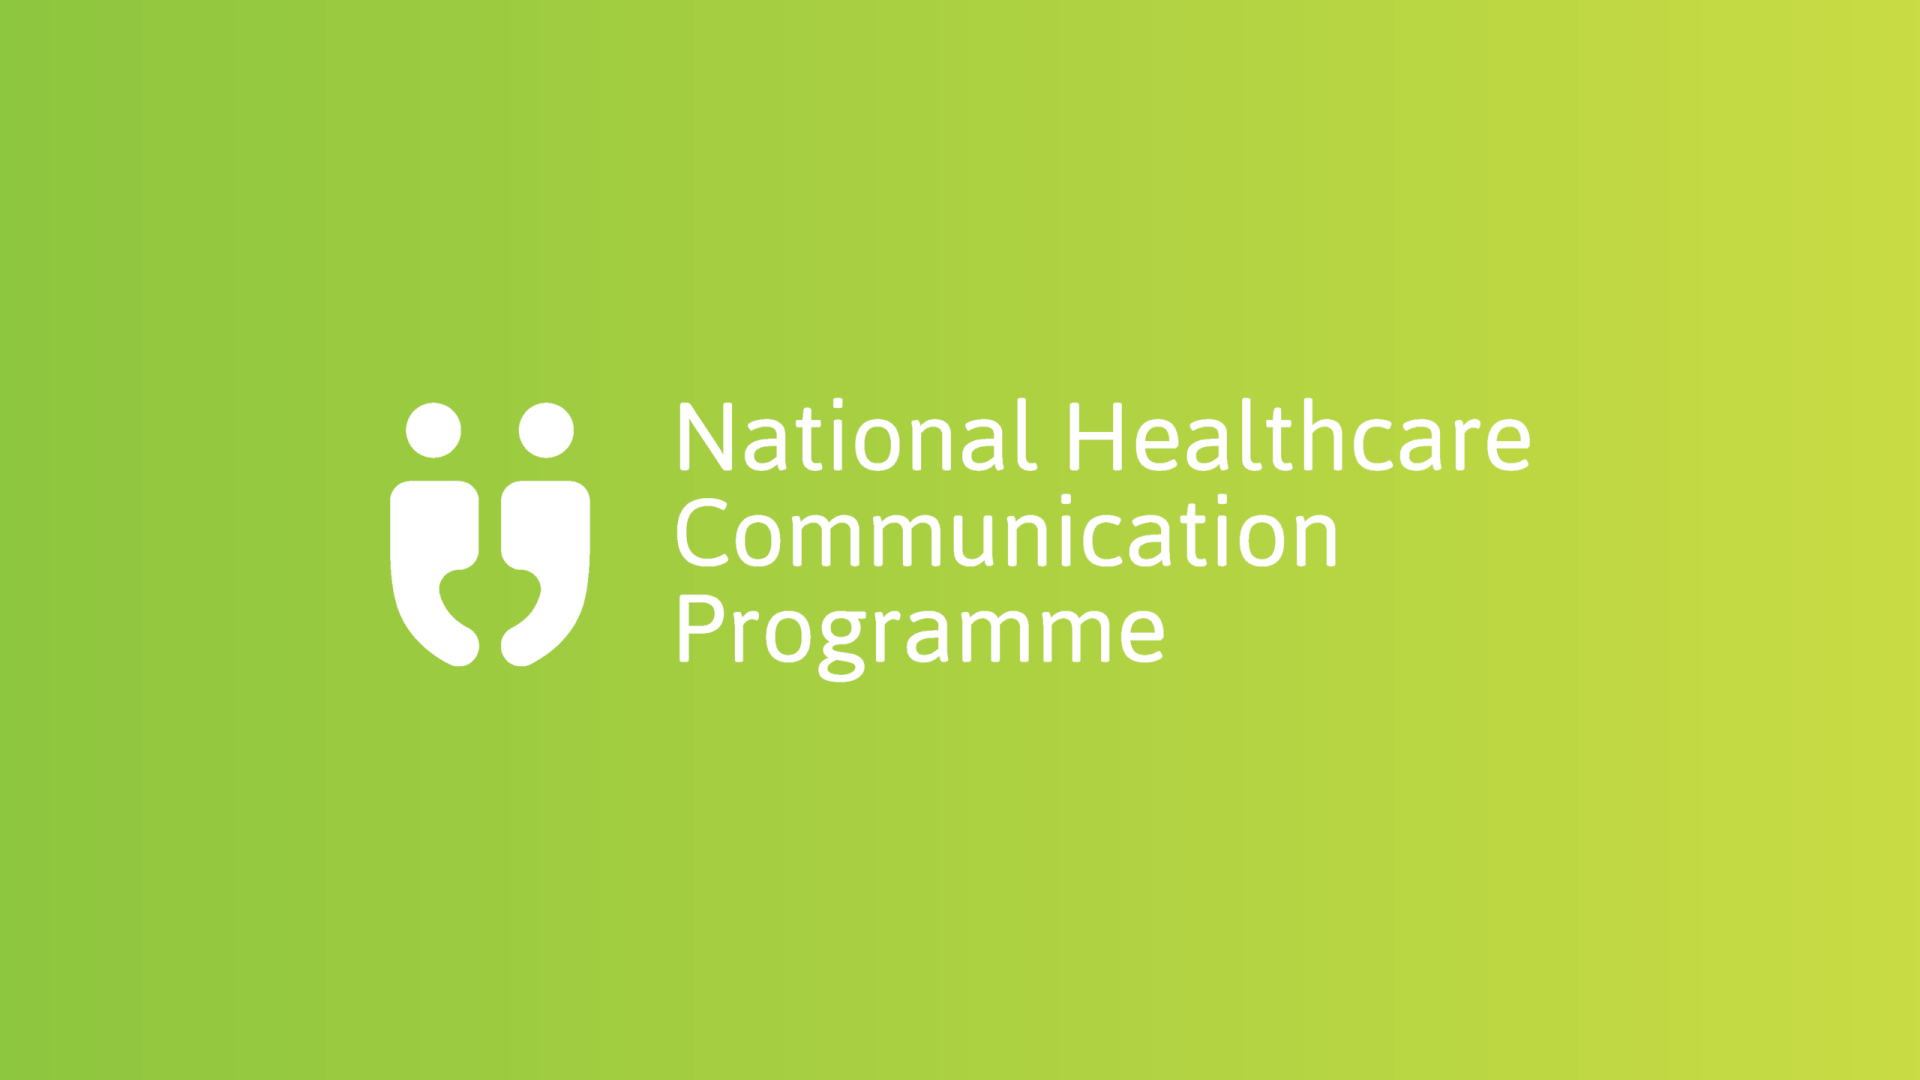 HSE national healthcare communication programme horizontal reversed logo